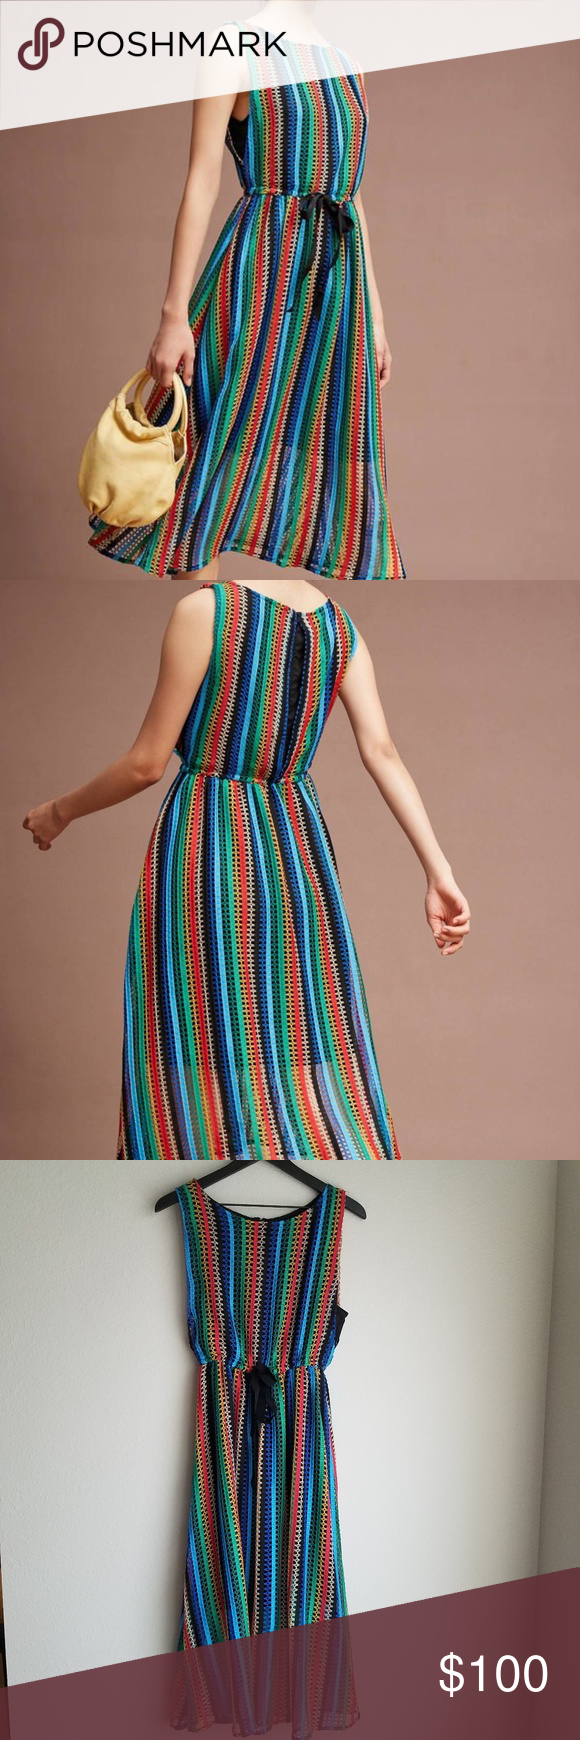 44848f1a88a Eva Franco Rainbow Crochet Midi Dress size 8 NWT attached sash, back zip,  lined